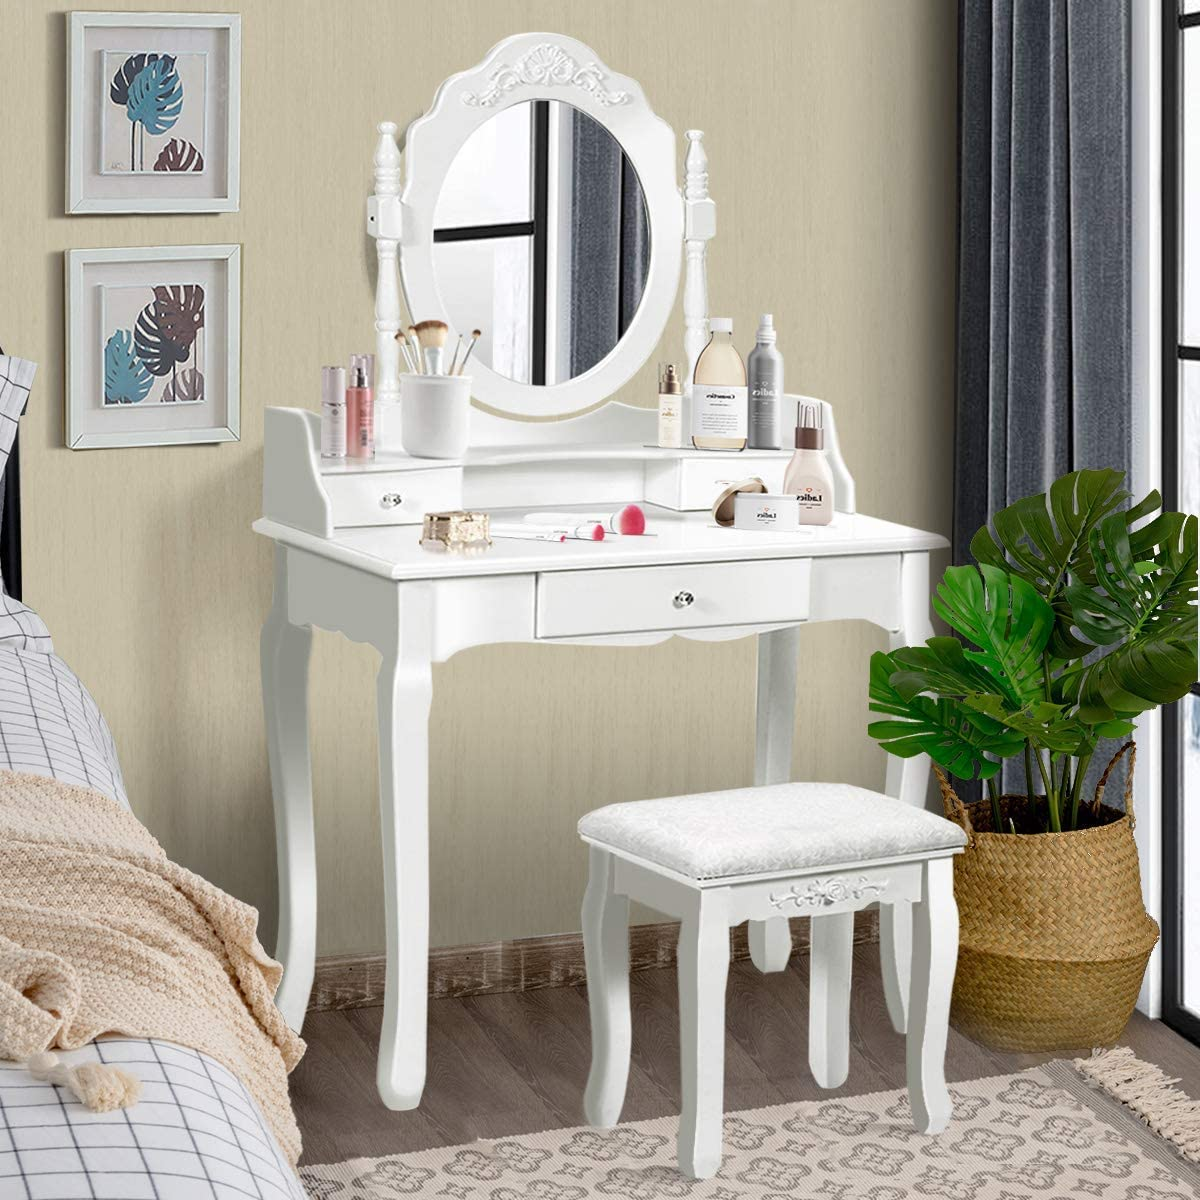 Giantex Vanity Table Set with Mirror and Stool for Bedroom Modern Wood Style Cushioned Bench Oval Mirrored Multifunctional Top Removable Writing Desk Dressing Tables for Girls, 3 Drawers White